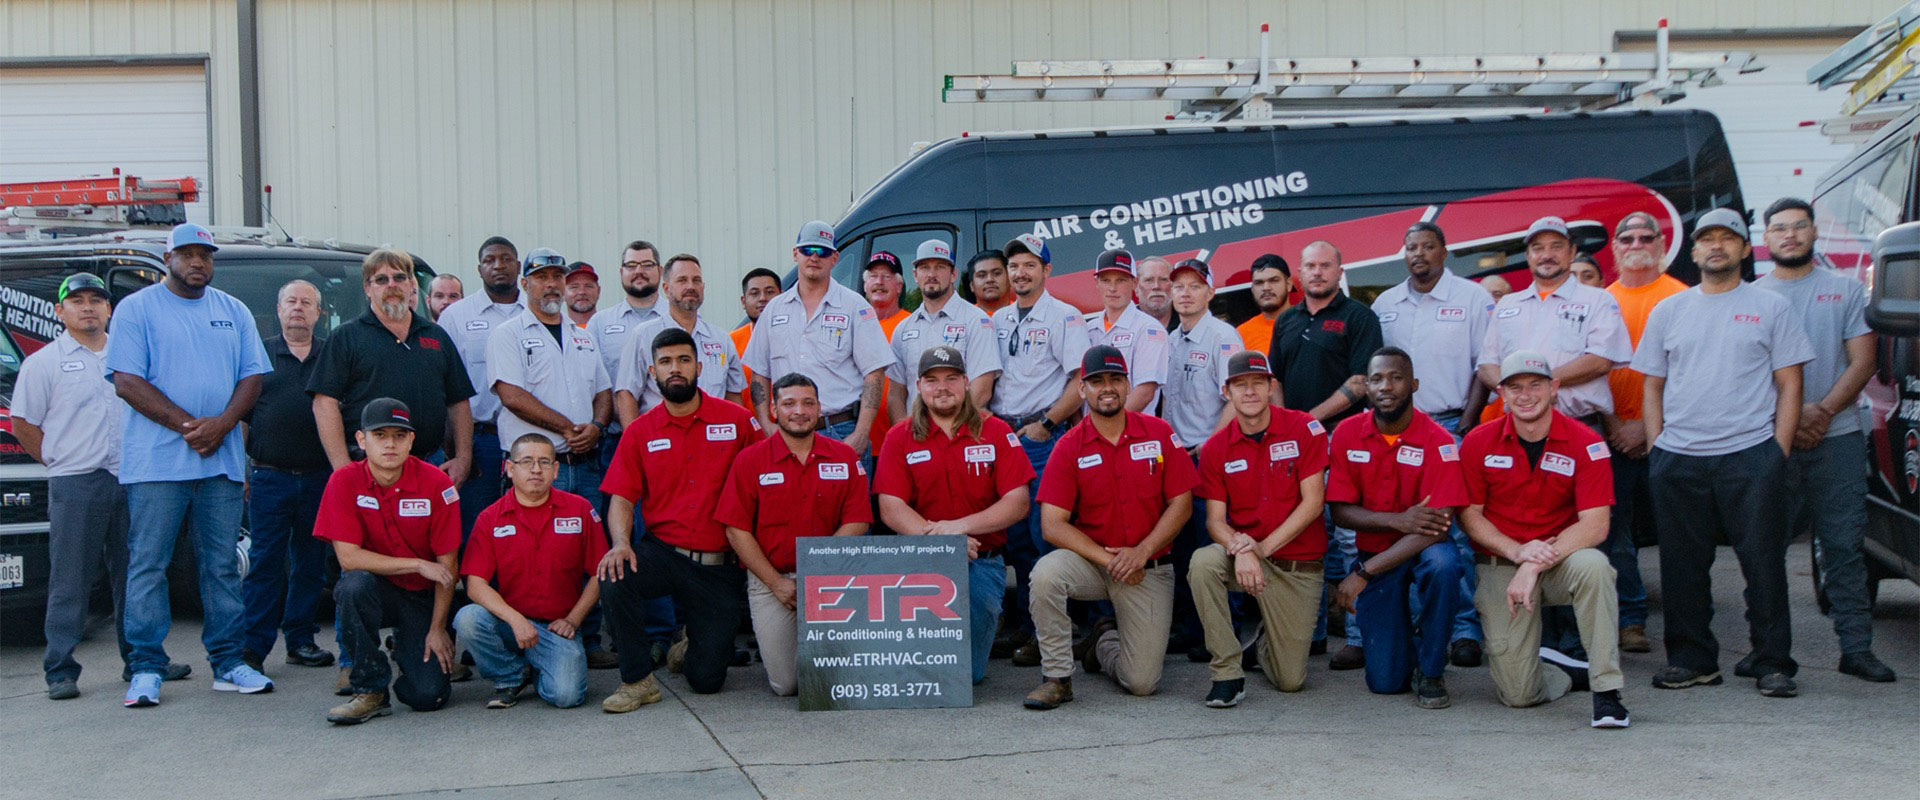 Team members from ETR Air Conditioning and Heating from Longview Texas